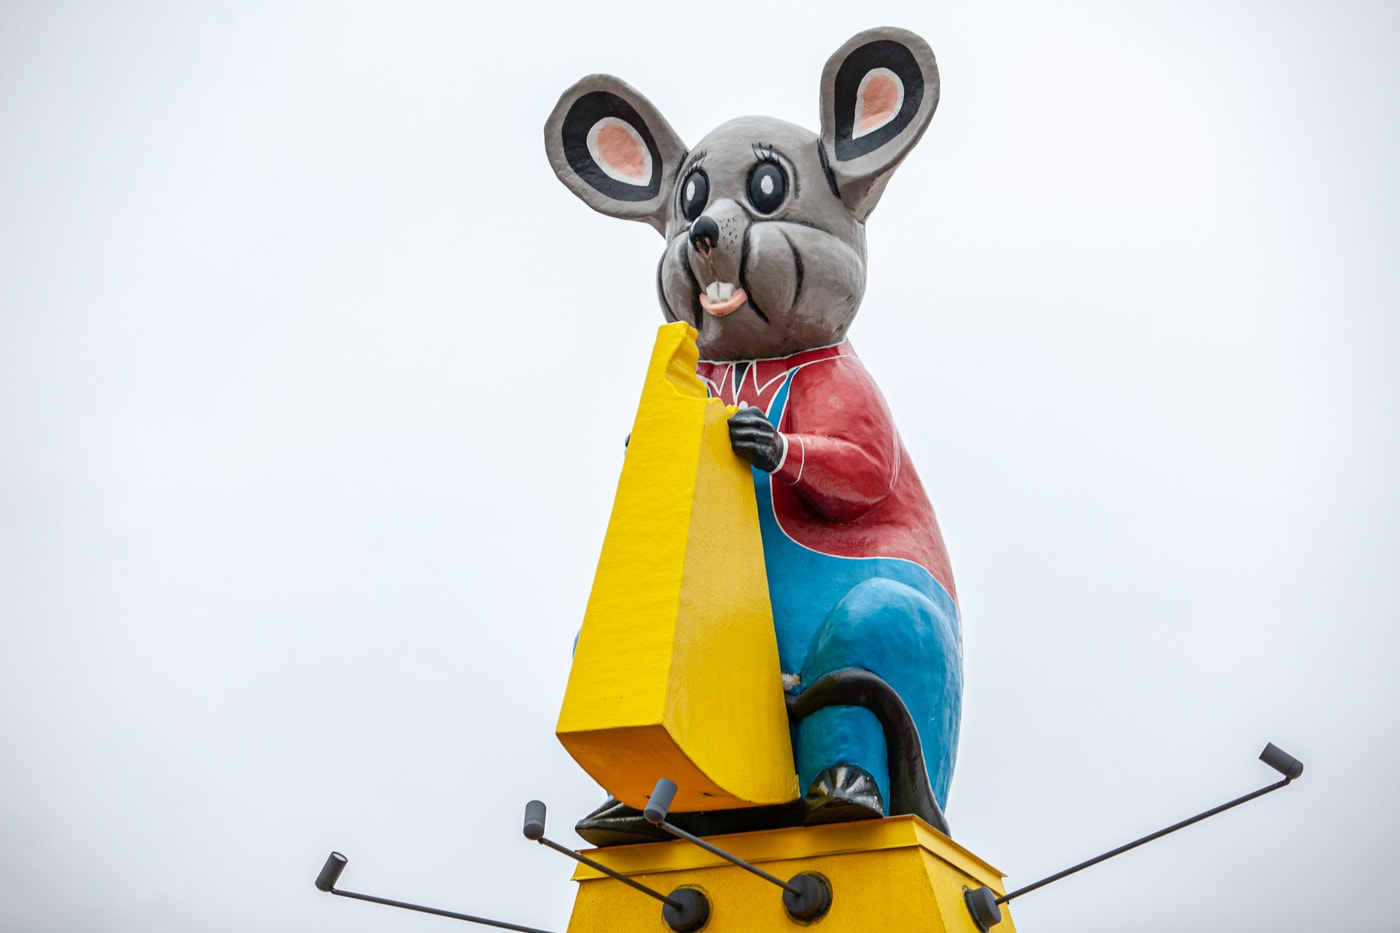 Giant Mouse at Mousehouse Cheesehaus in Windsor, Wisconsin | Cheese Shop in Wisconsin | Wisconsin Roadside Attractions